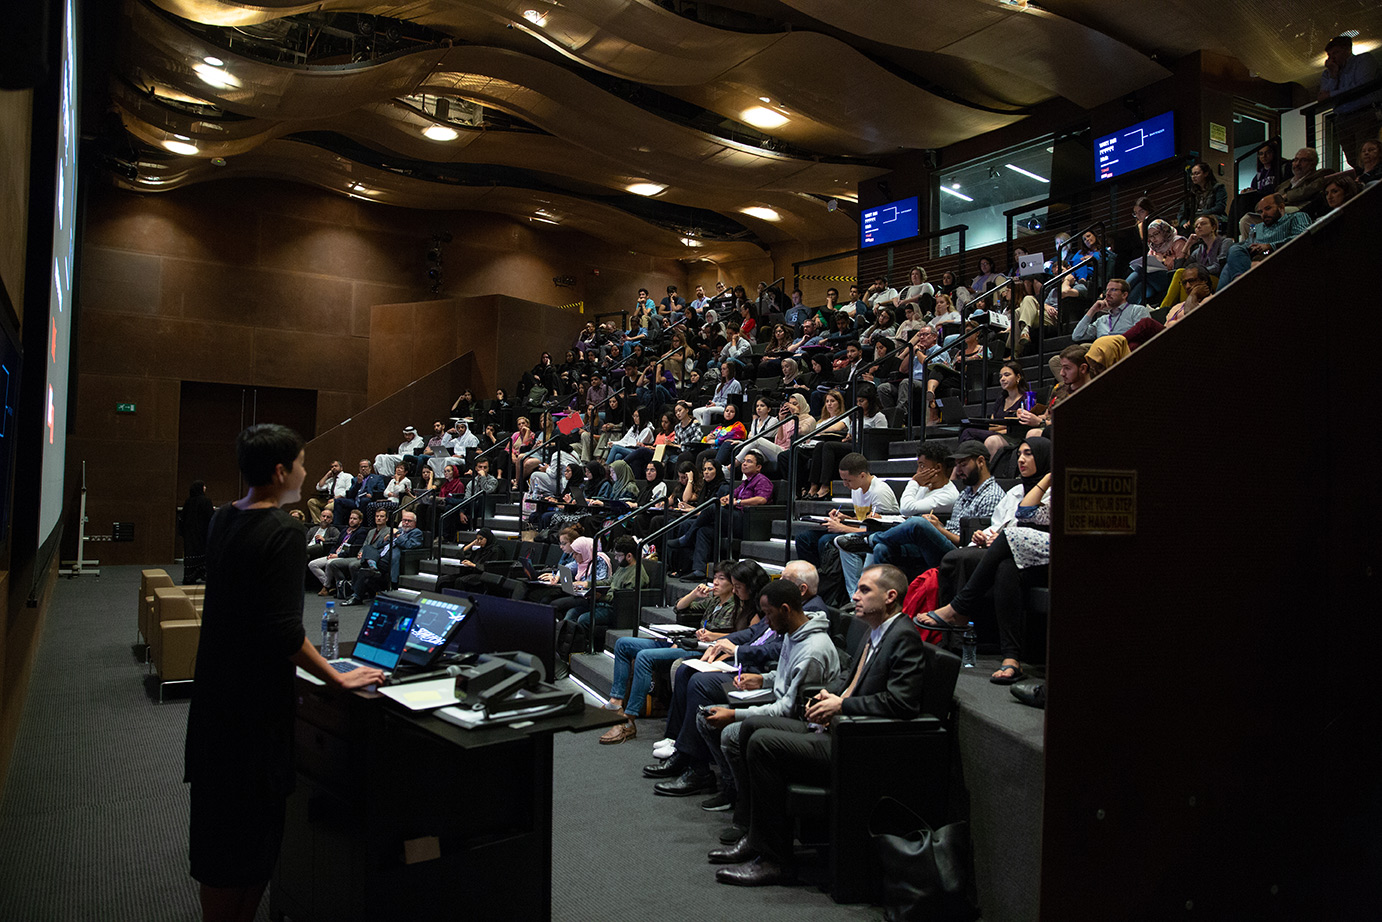 The auditorium, which fits 115 people, features a large HD projector and can be used to record and stream live events.